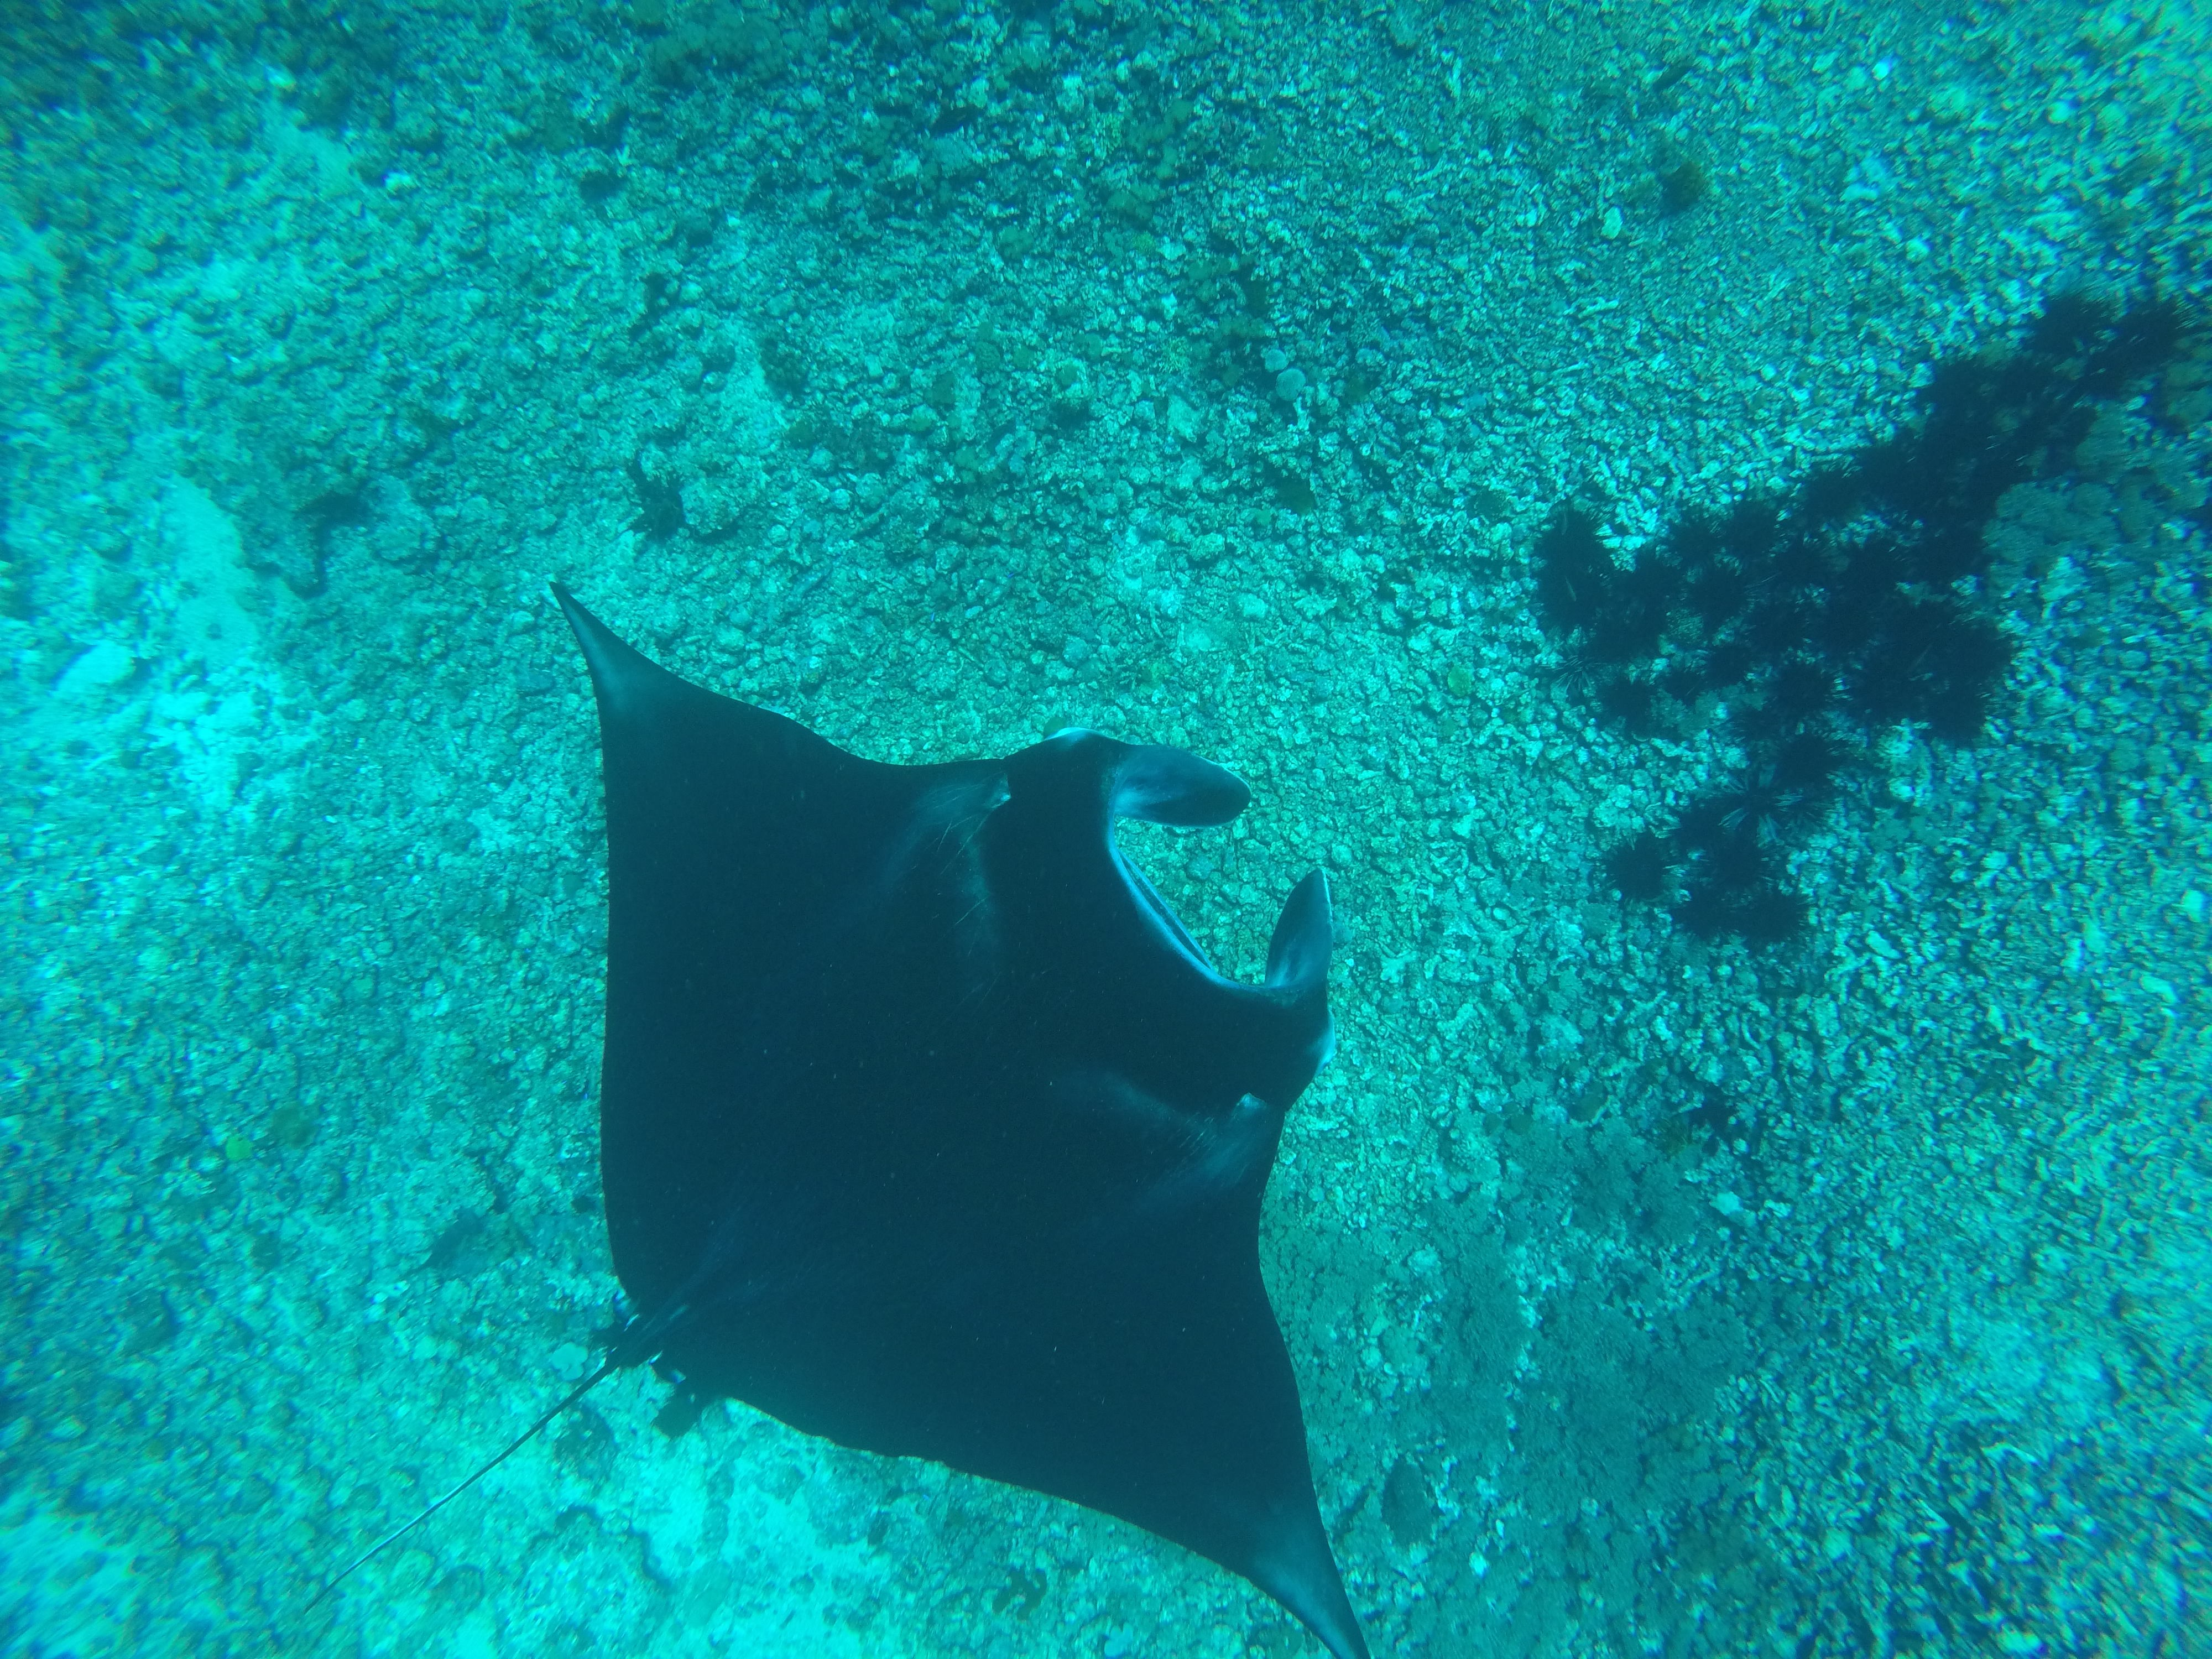 Island Hopping Flores Day 2 - Manta Rays at Manta Point - Two Worlds Treasures